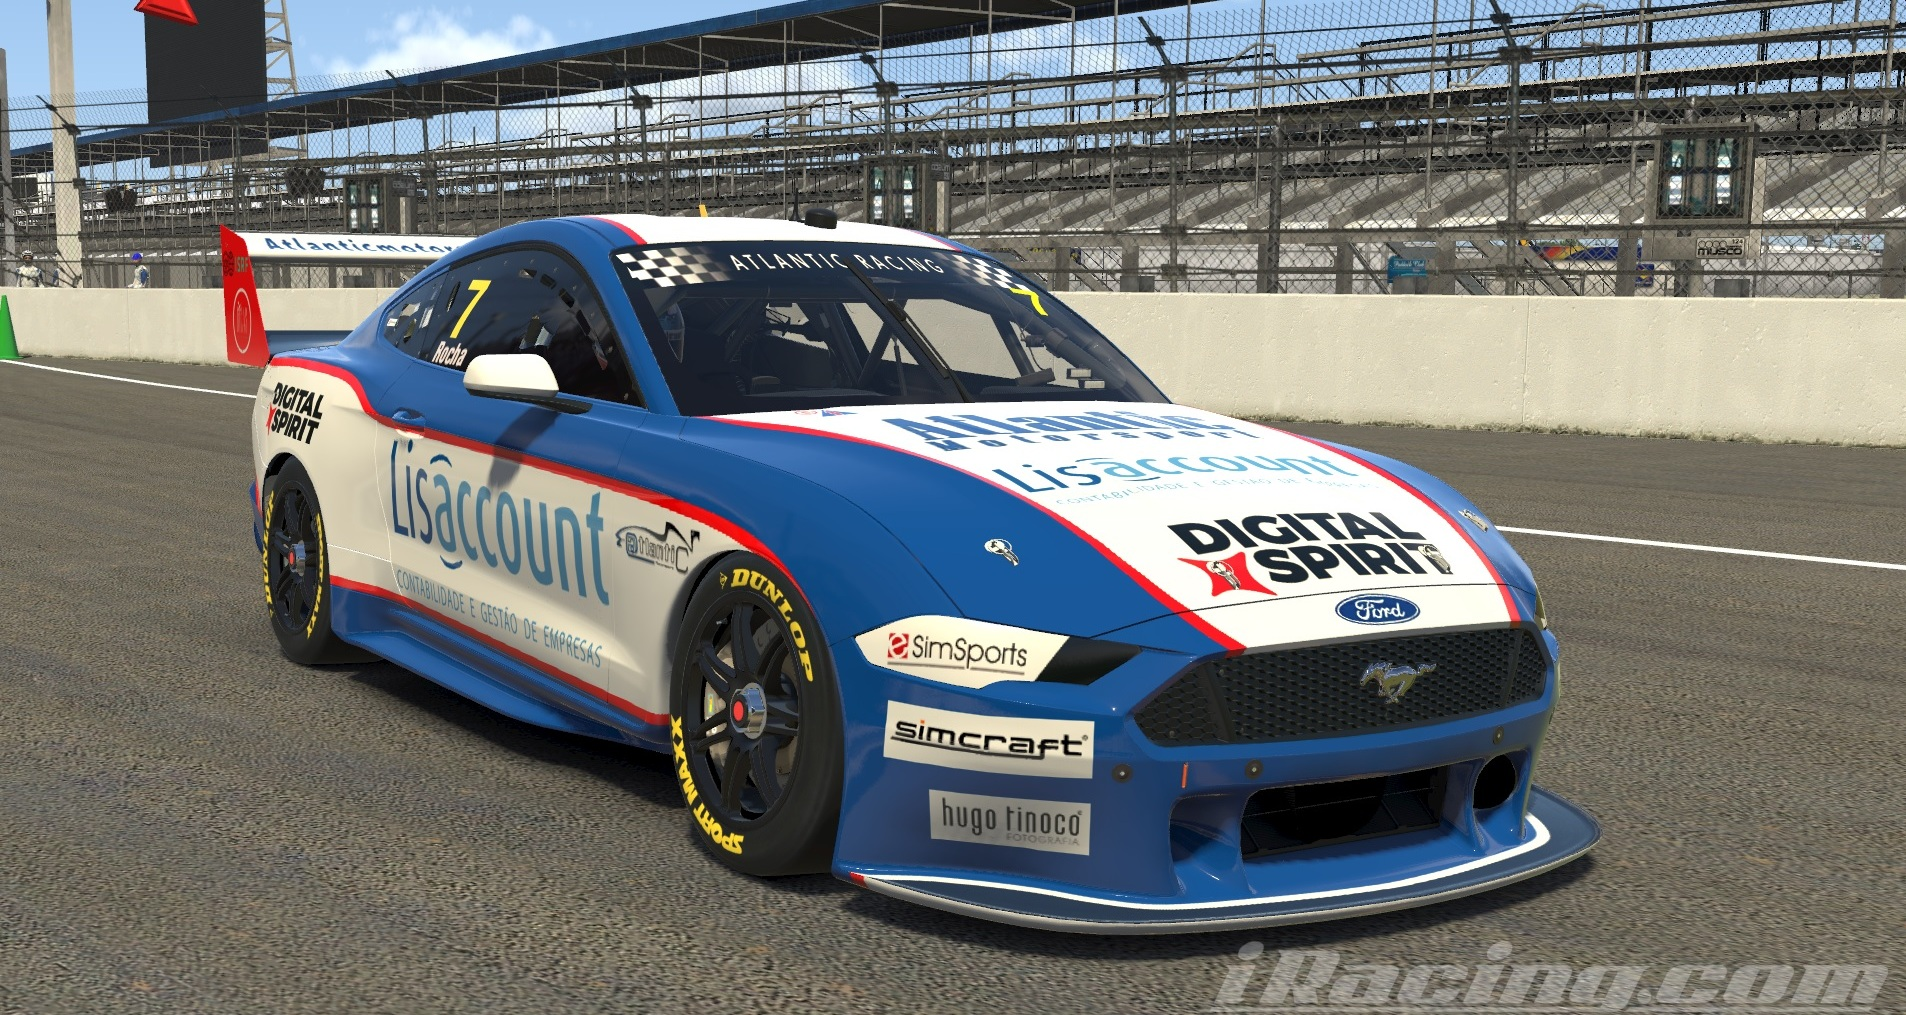 Atlantic Motorsport presents the new Supercar Ford Mustang GT for iRacing